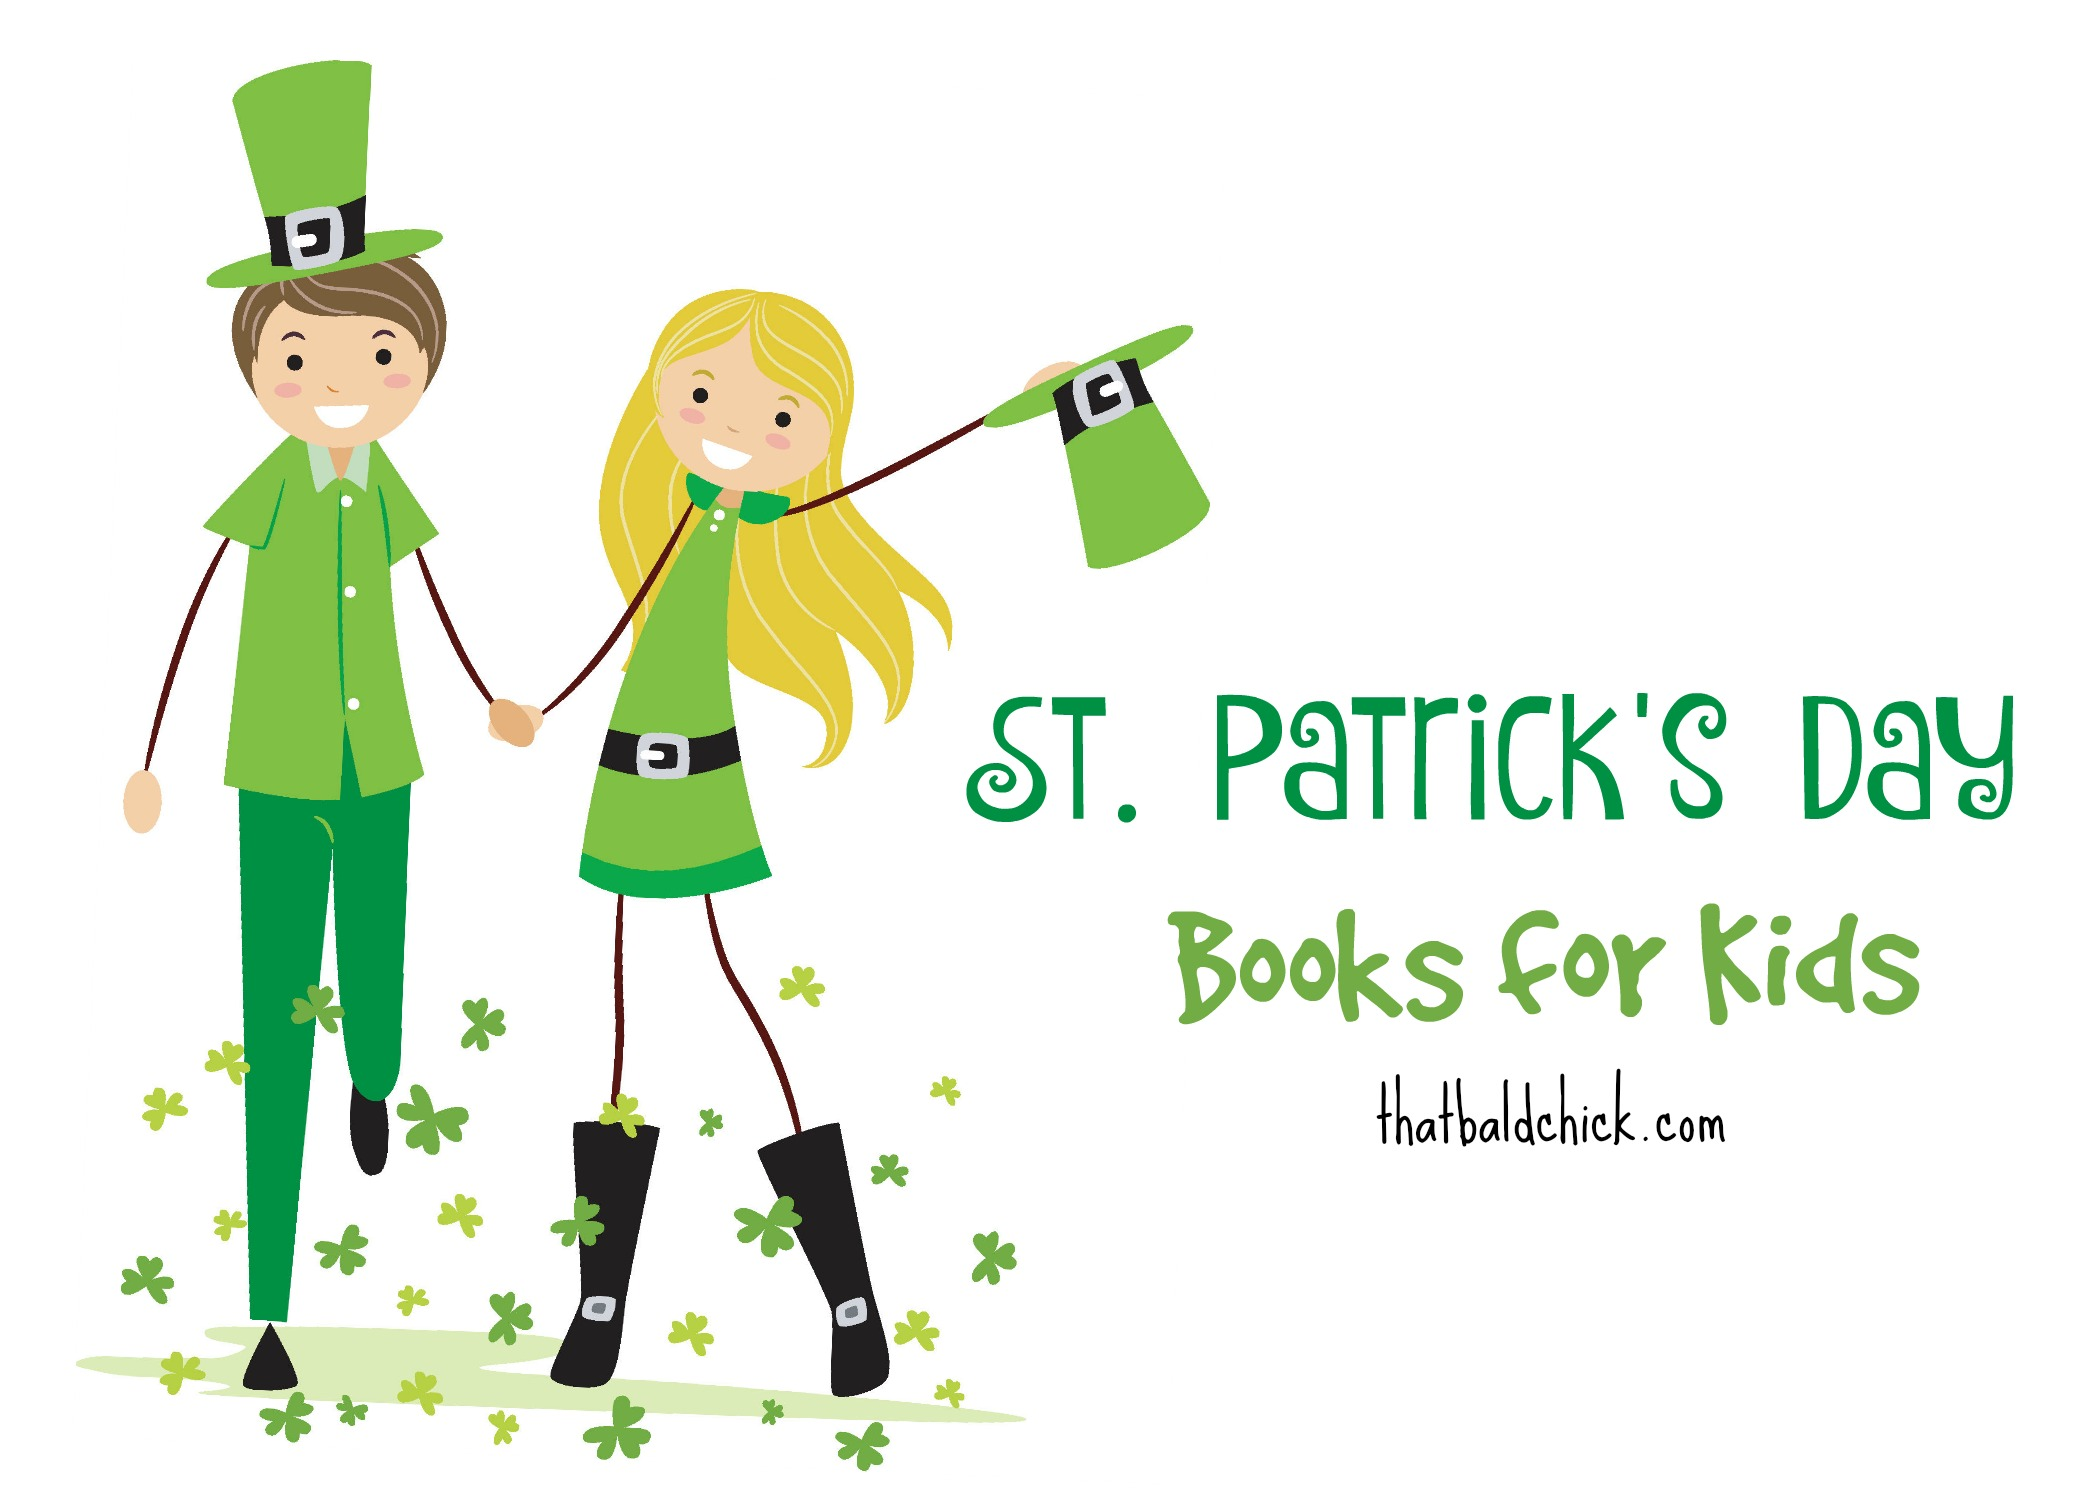 30+ kids books for St Patrick's Day at thatbaldchick.com